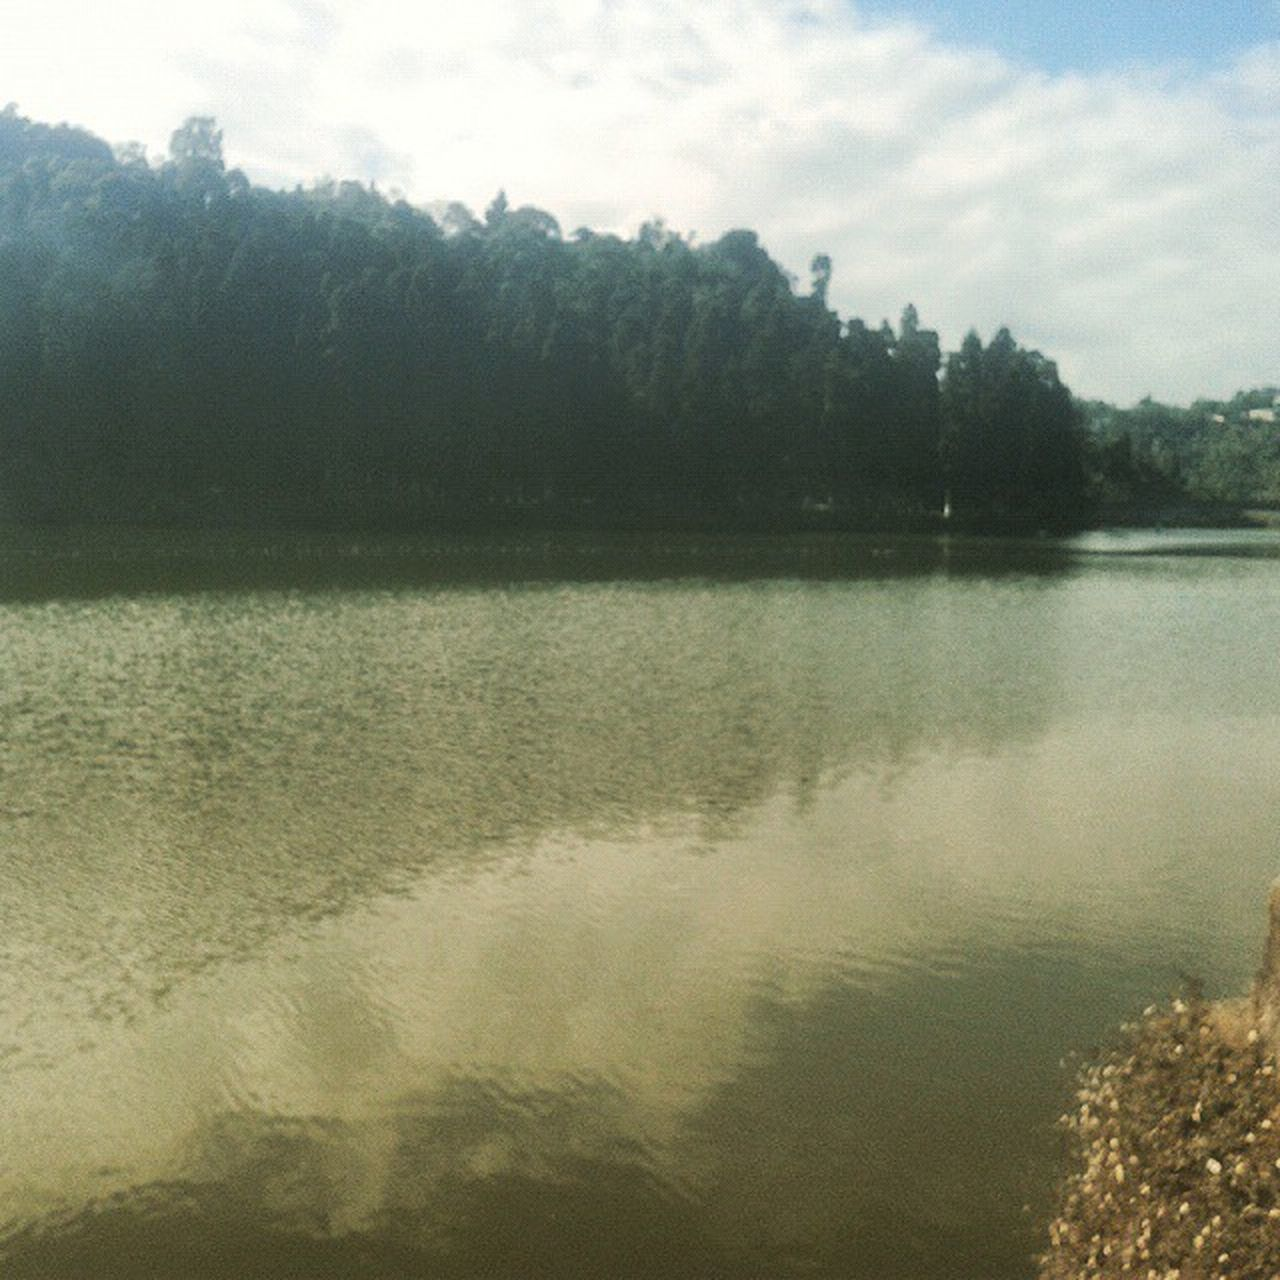 tree, water, nature, lake, reflection, tranquility, no people, scenics, tranquil scene, outdoors, beauty in nature, forest, day, sky, landscape